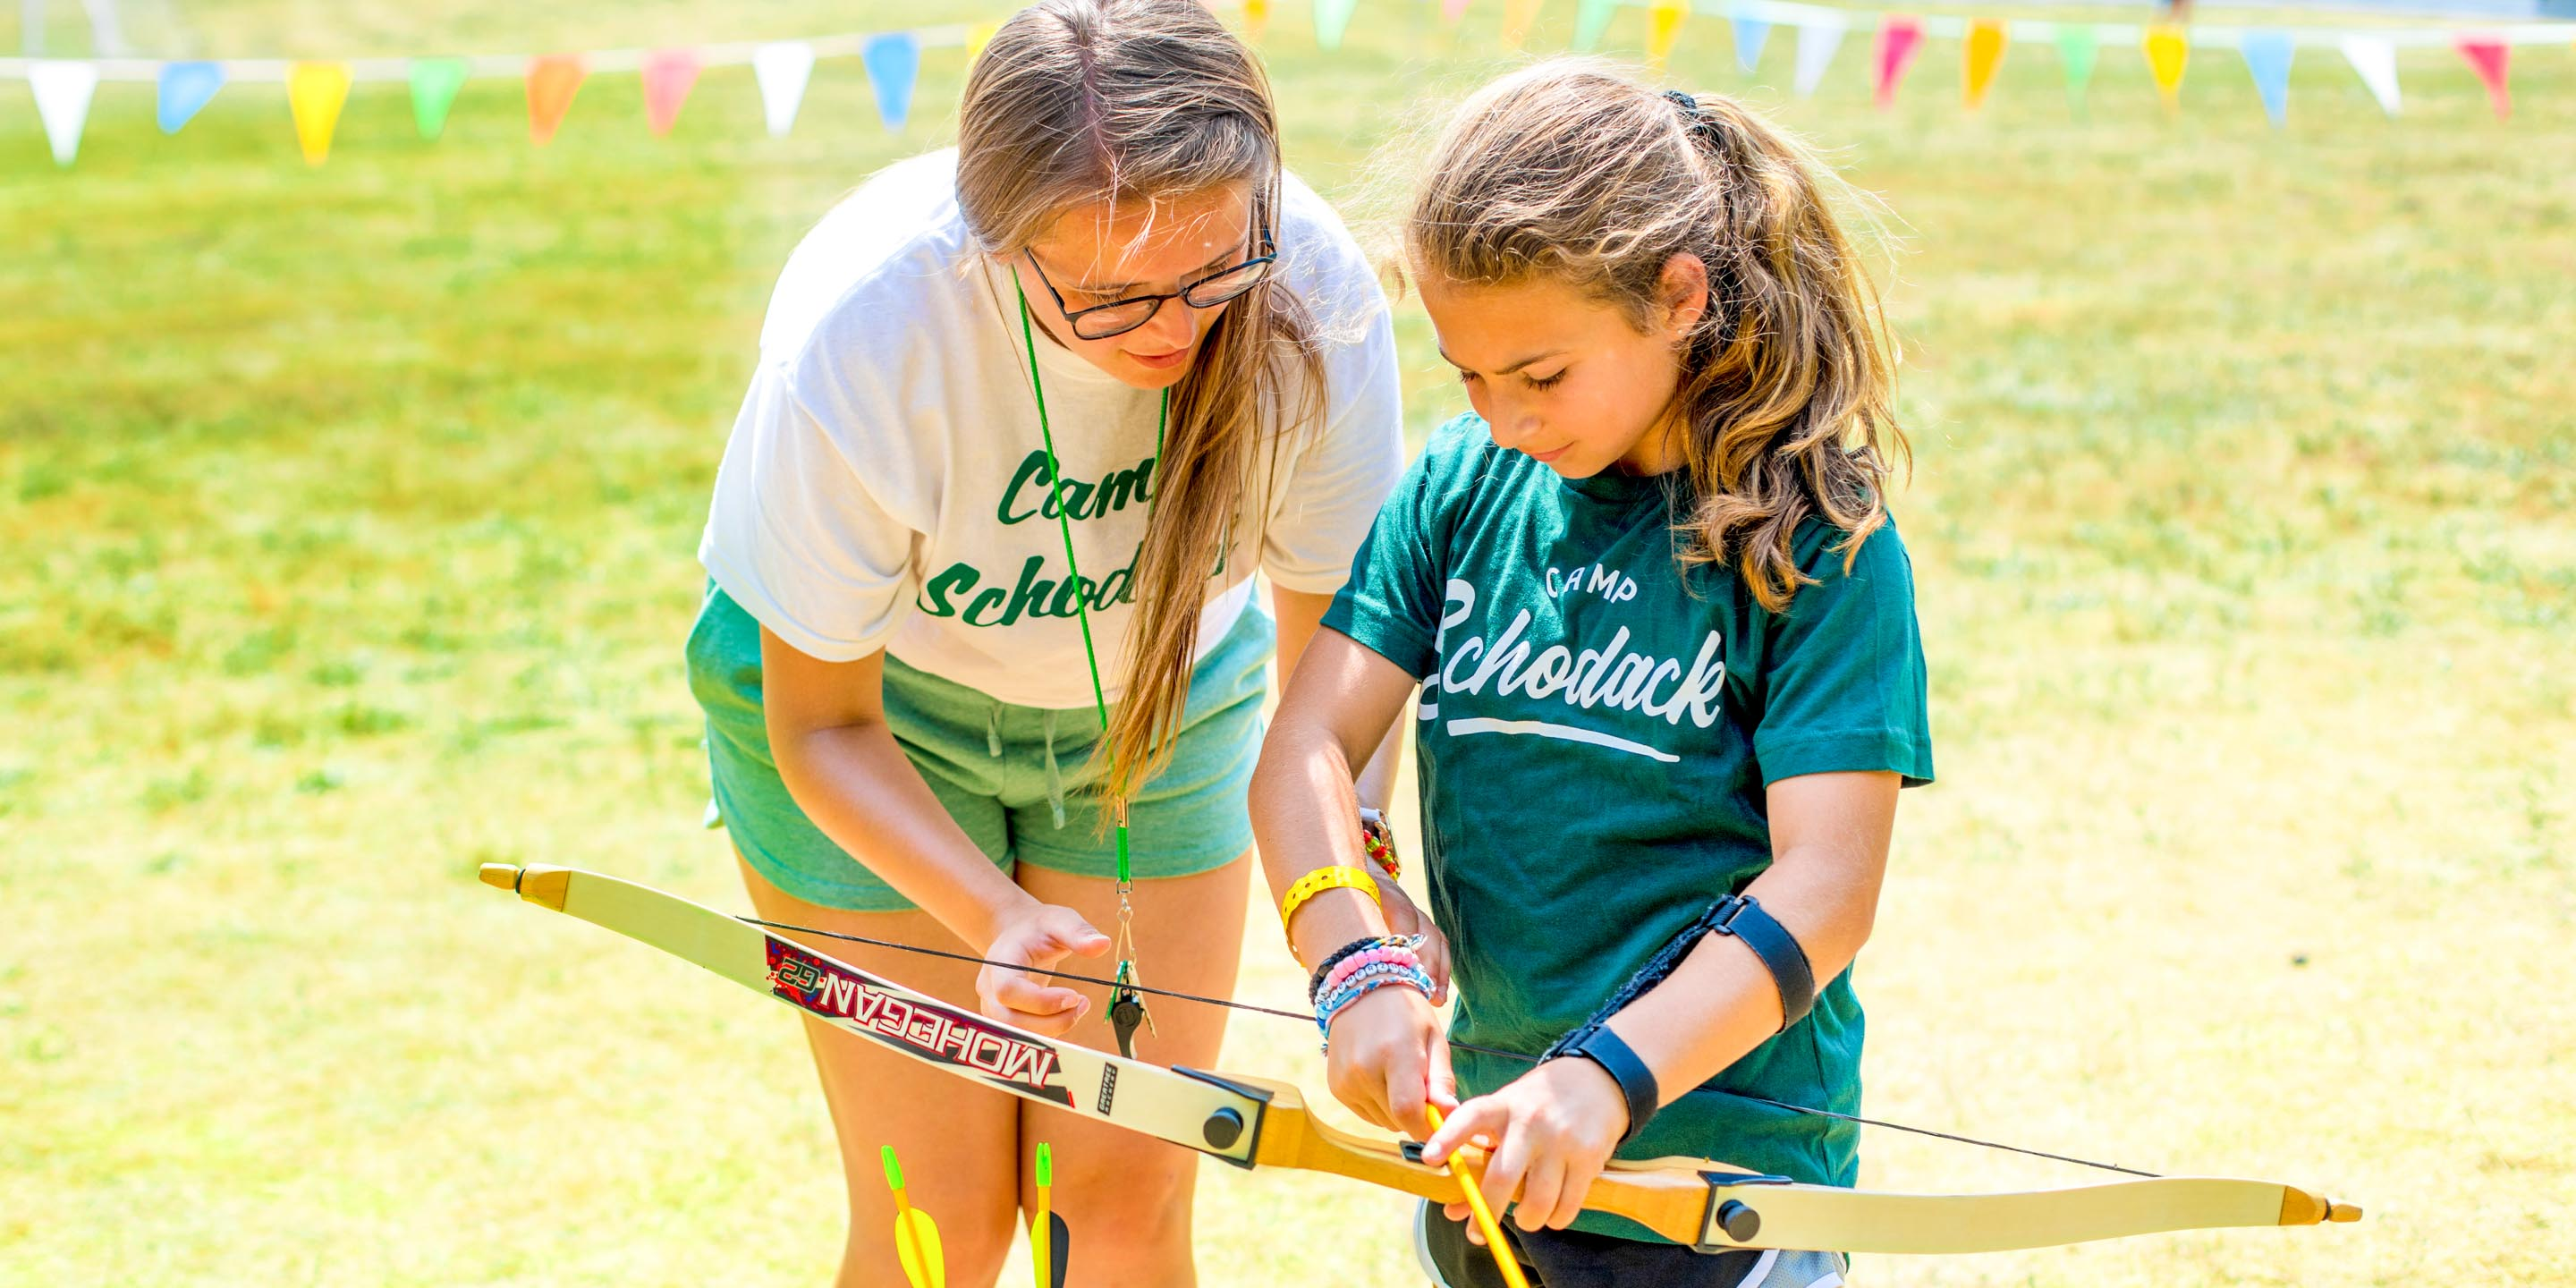 Staff member helps camper nock arrow for archery